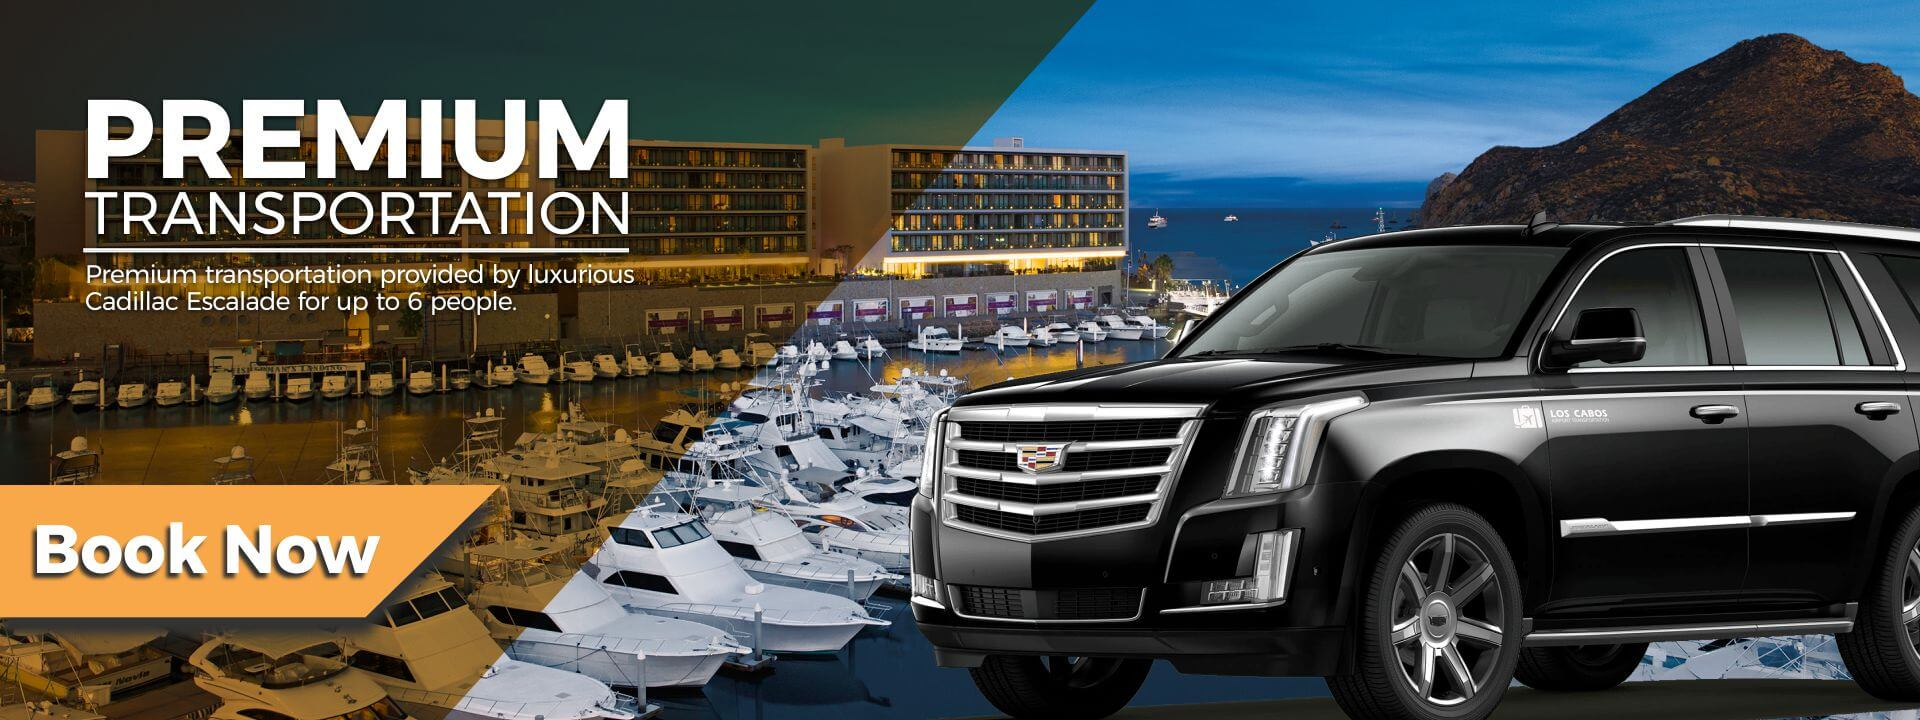 Los Cabos Airport Transportation